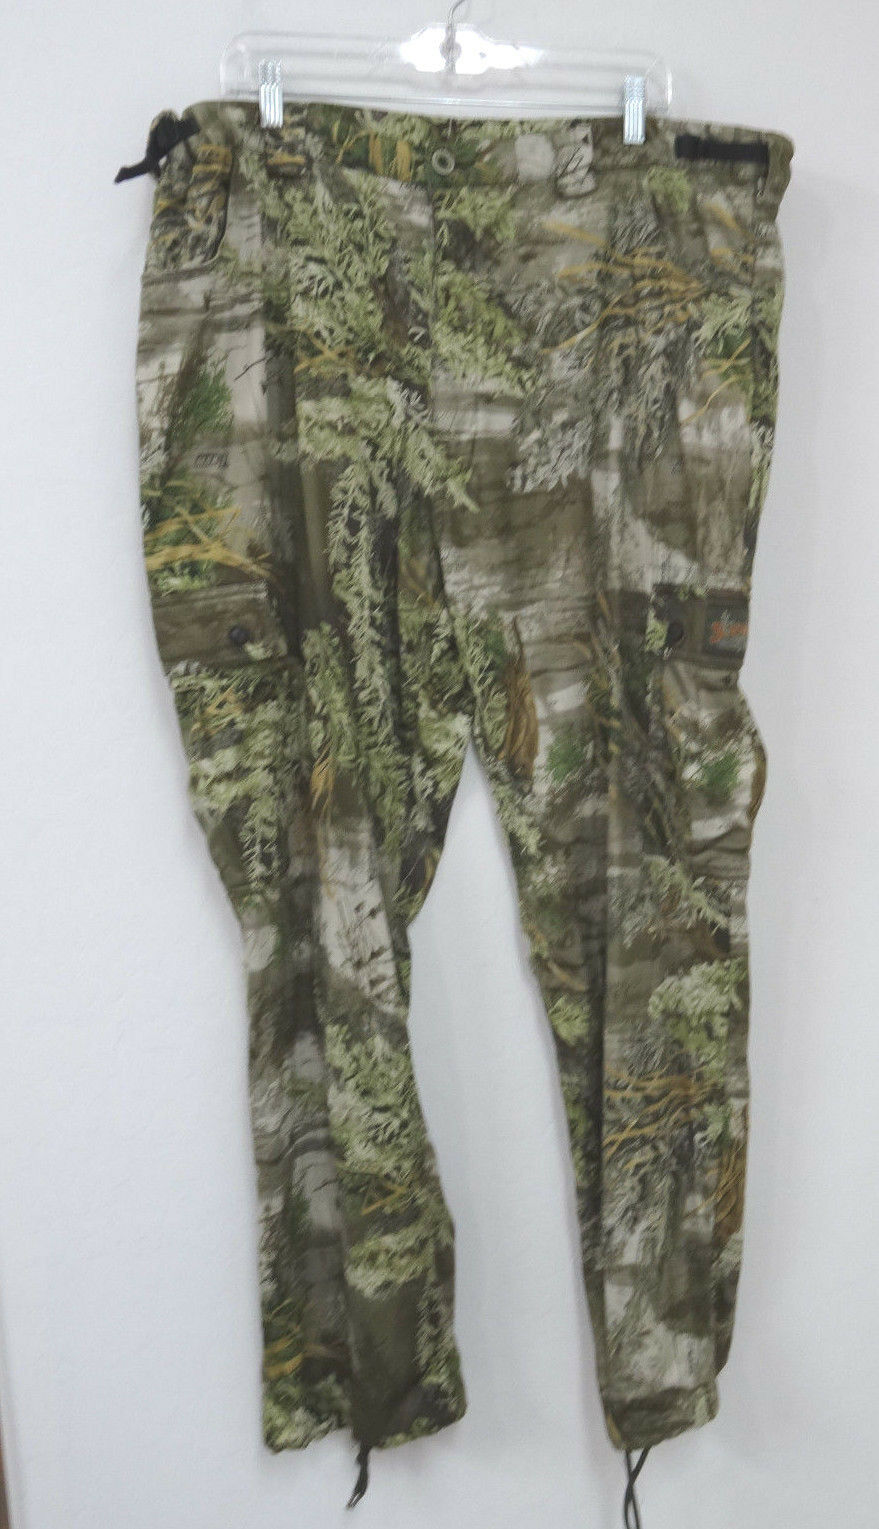 SCENTLOK ADVANTAGE MAX-1 MENS SIZE XXL CAMOUFLAGE HUNTING PANTS  in GUC  good price